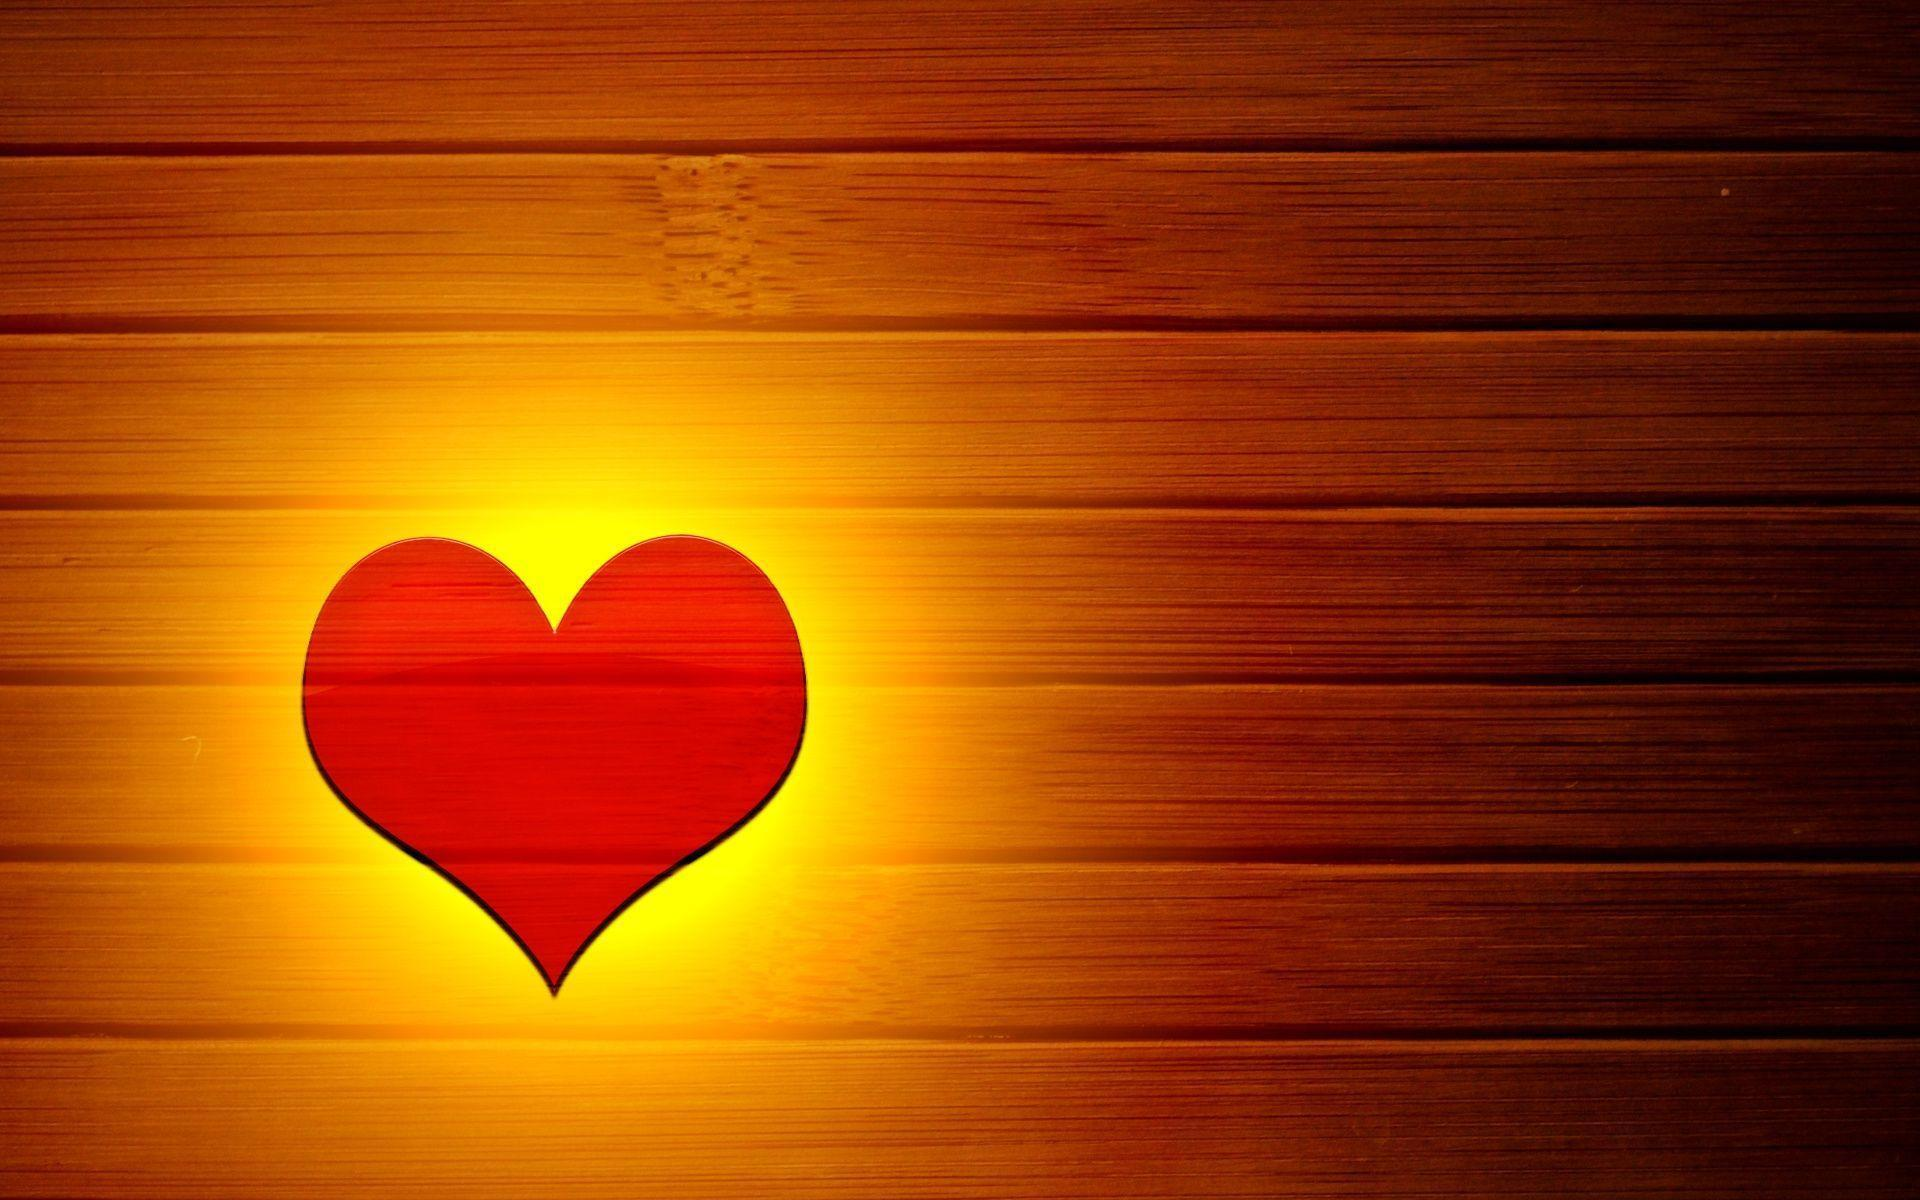 Love Wallpapers Images : Love Backgrounds Wallpapers - Wallpaper cave